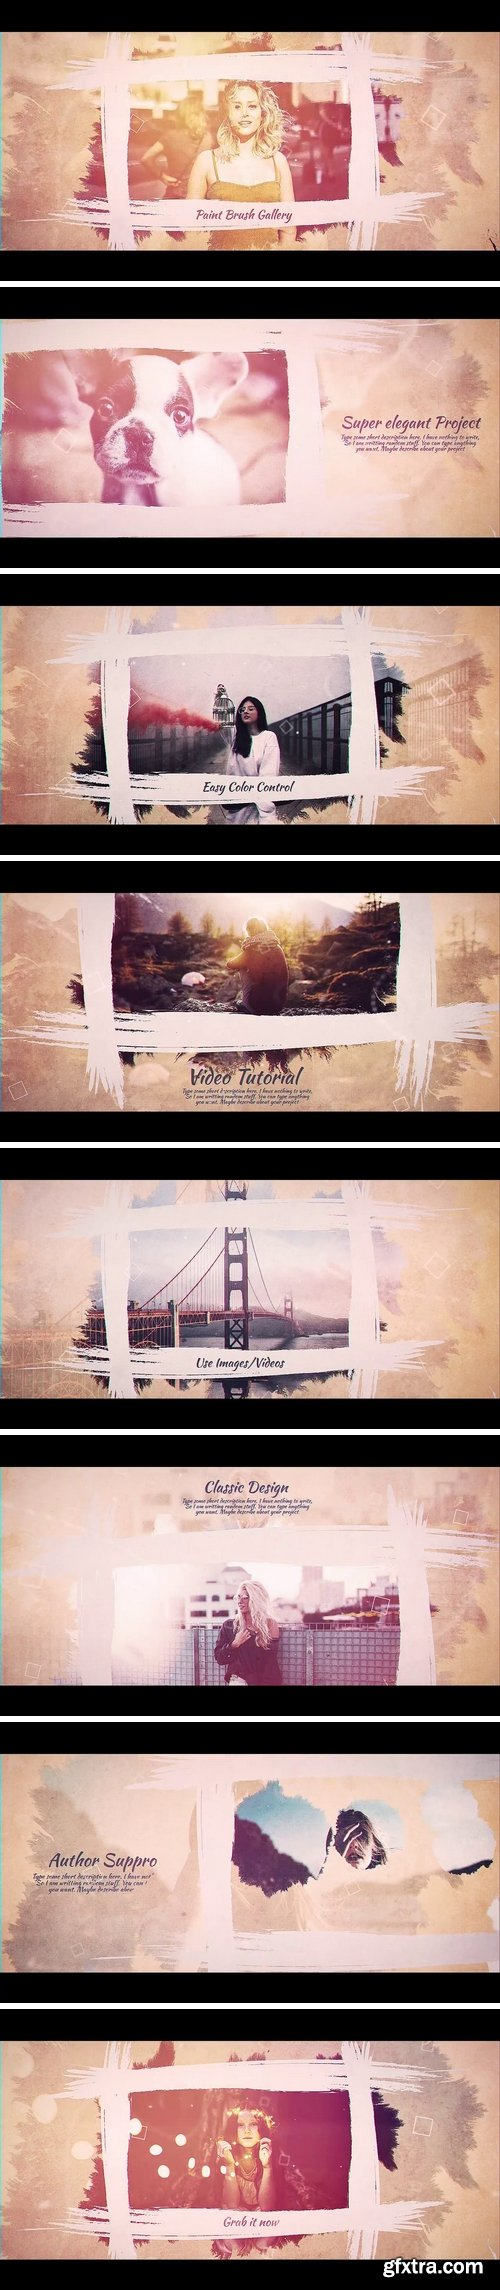 MA -  Brush Paint Gallery After Effects Templates 152099